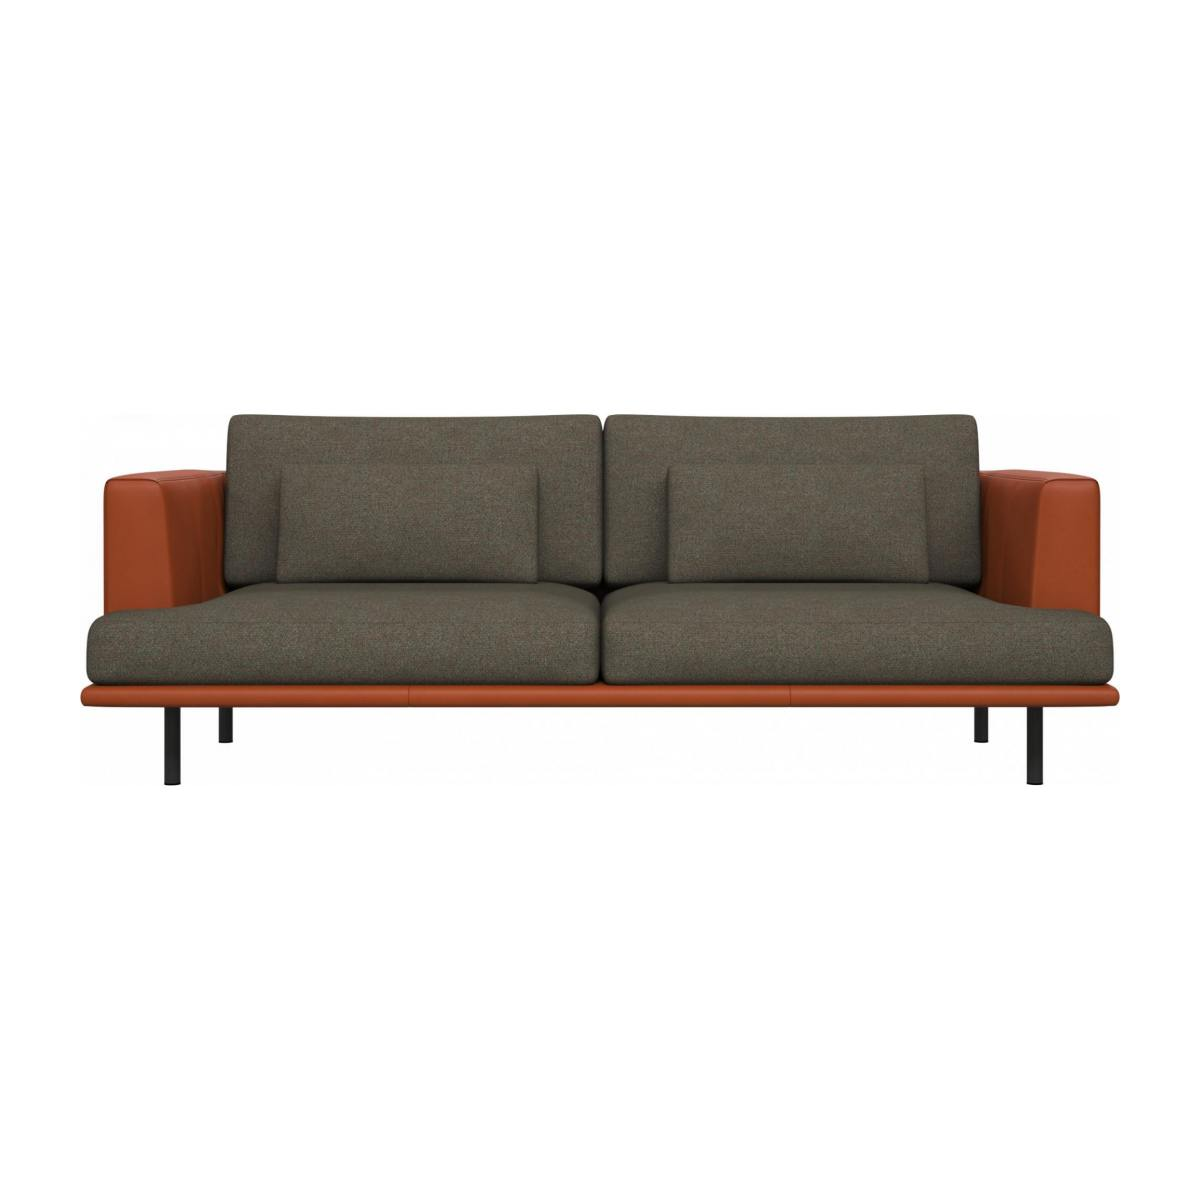 3 seater sofa in Lecce fabric, slade grey with base and armrests in brown leather n°1